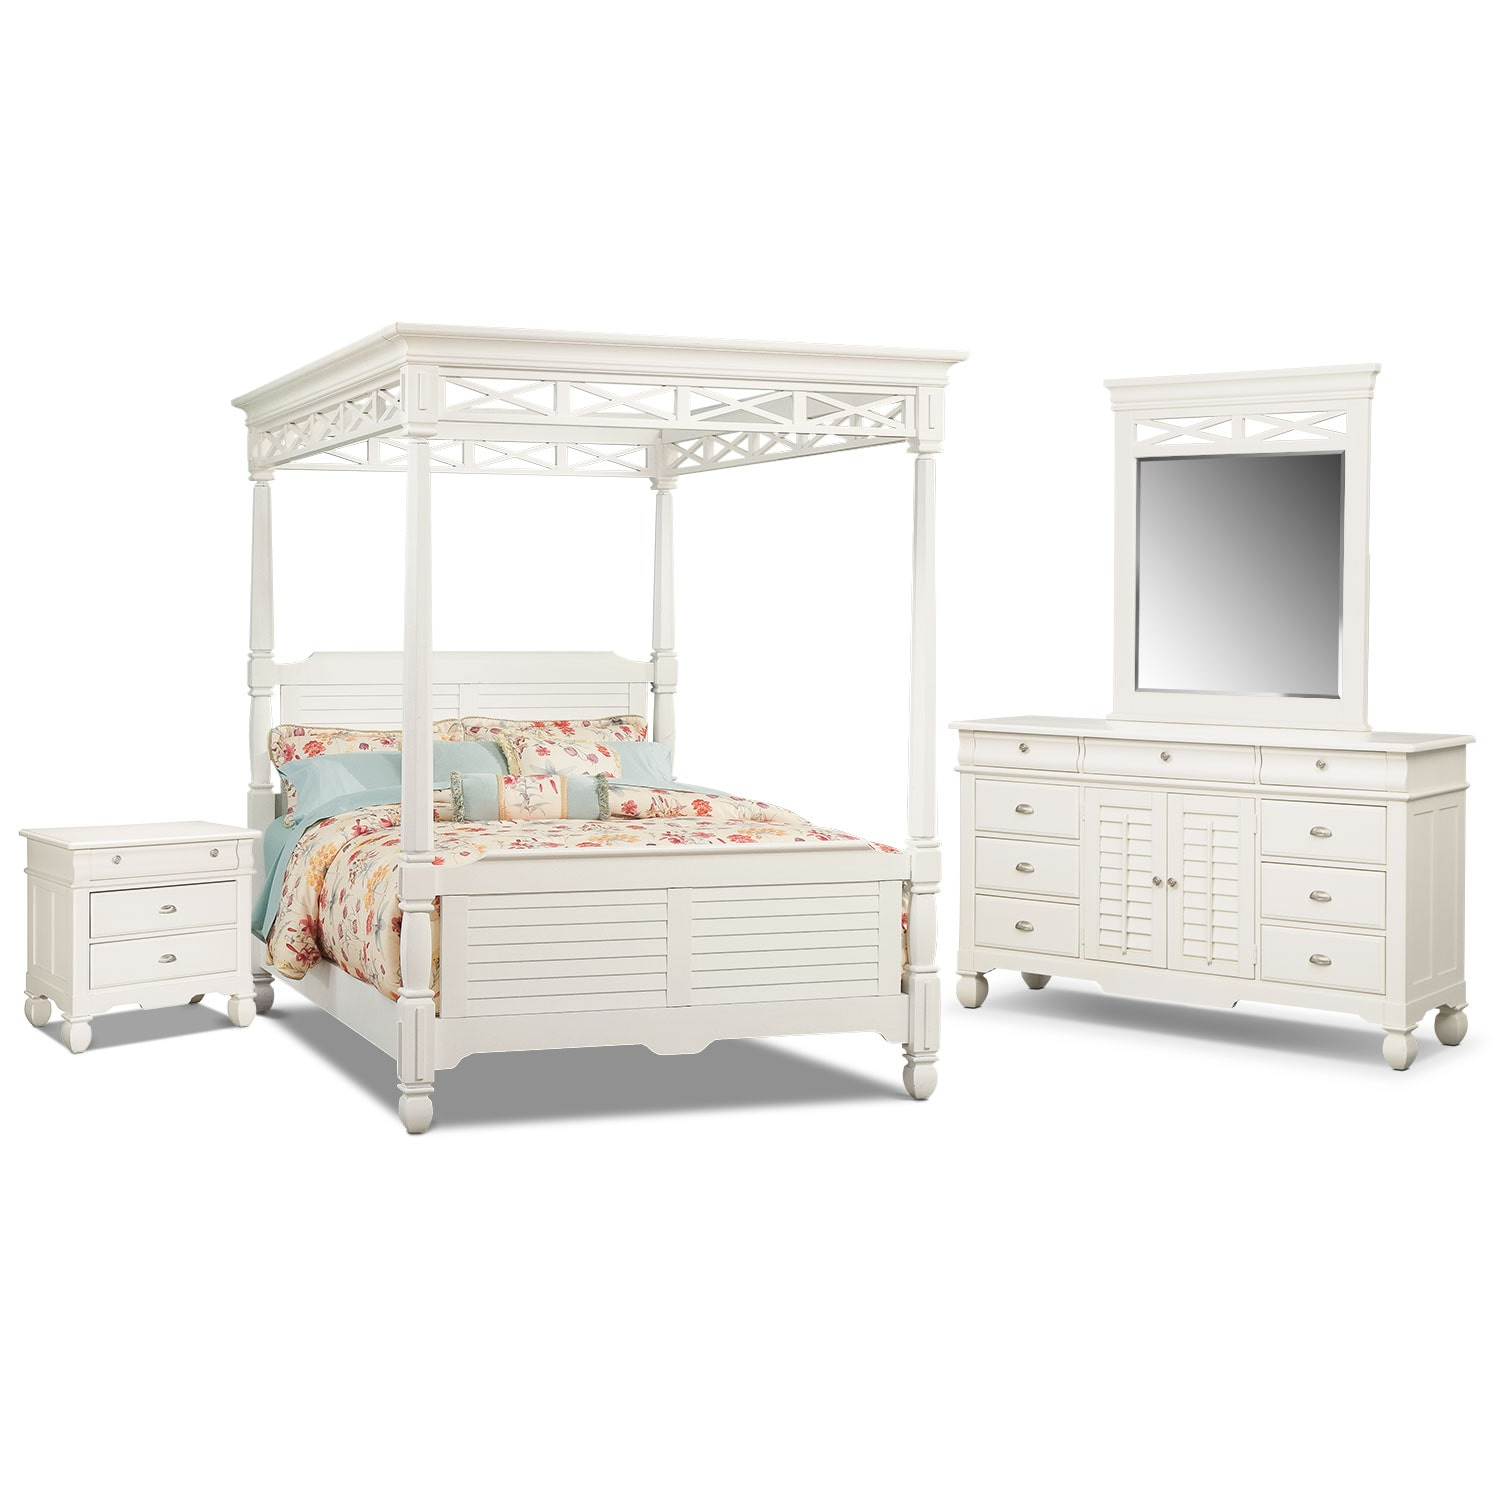 Bedroom Furniture - Plantation Cove White Canopy 6 Pc. King Bedroom (Alternate)